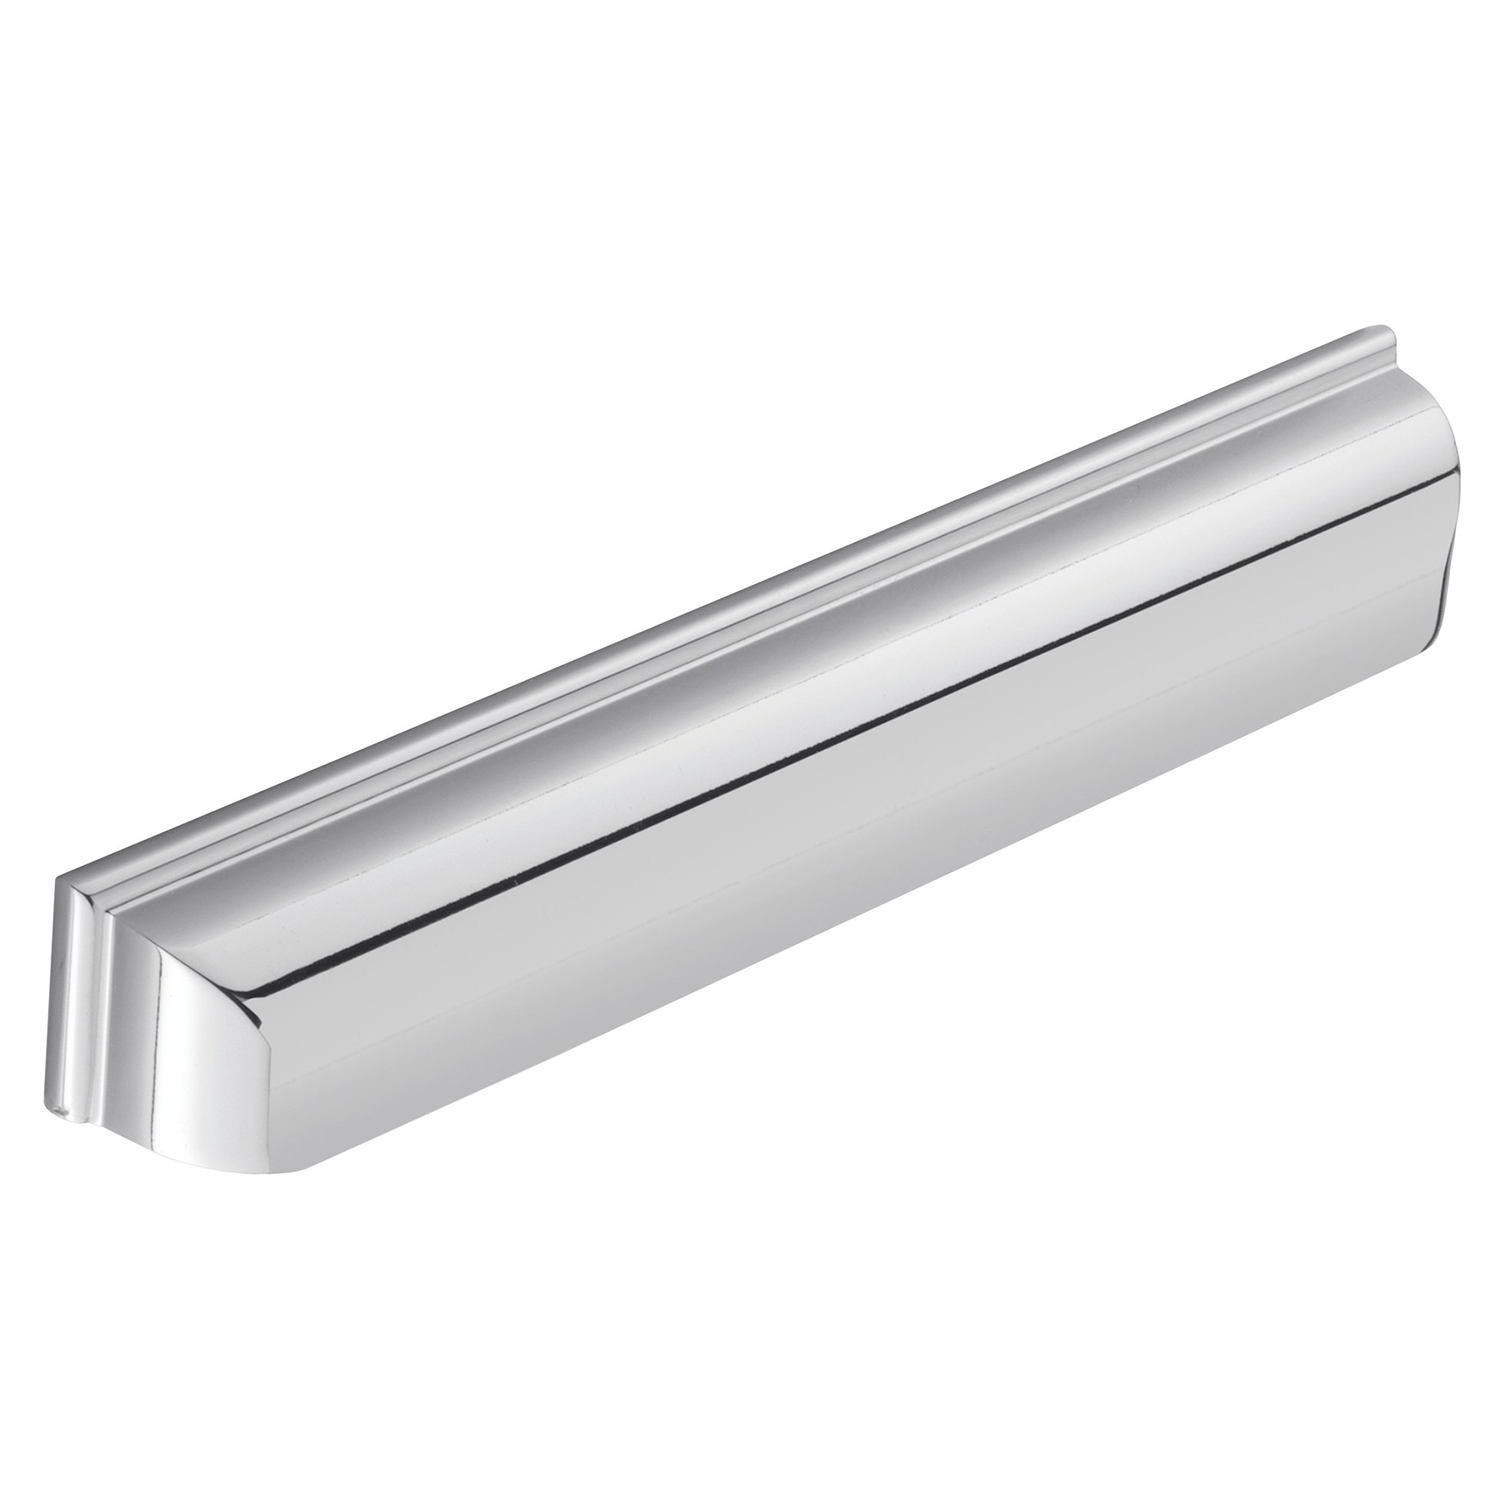 H1122.160.BN Elongated Cup Handle Square Detail 160mm Bright Nickel